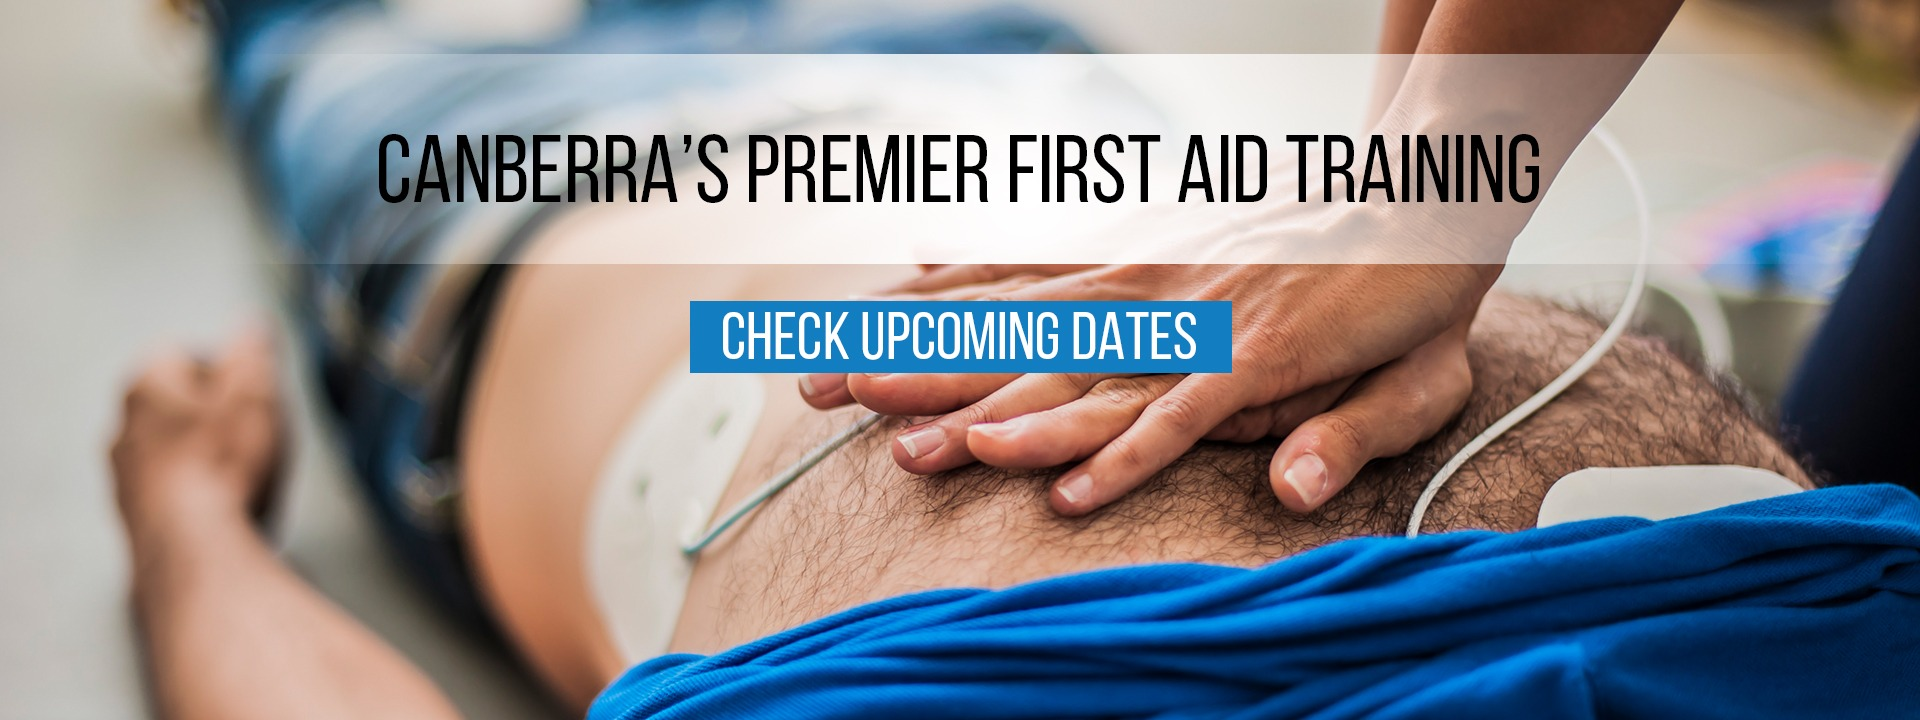 Canberra's Premier First AID Training